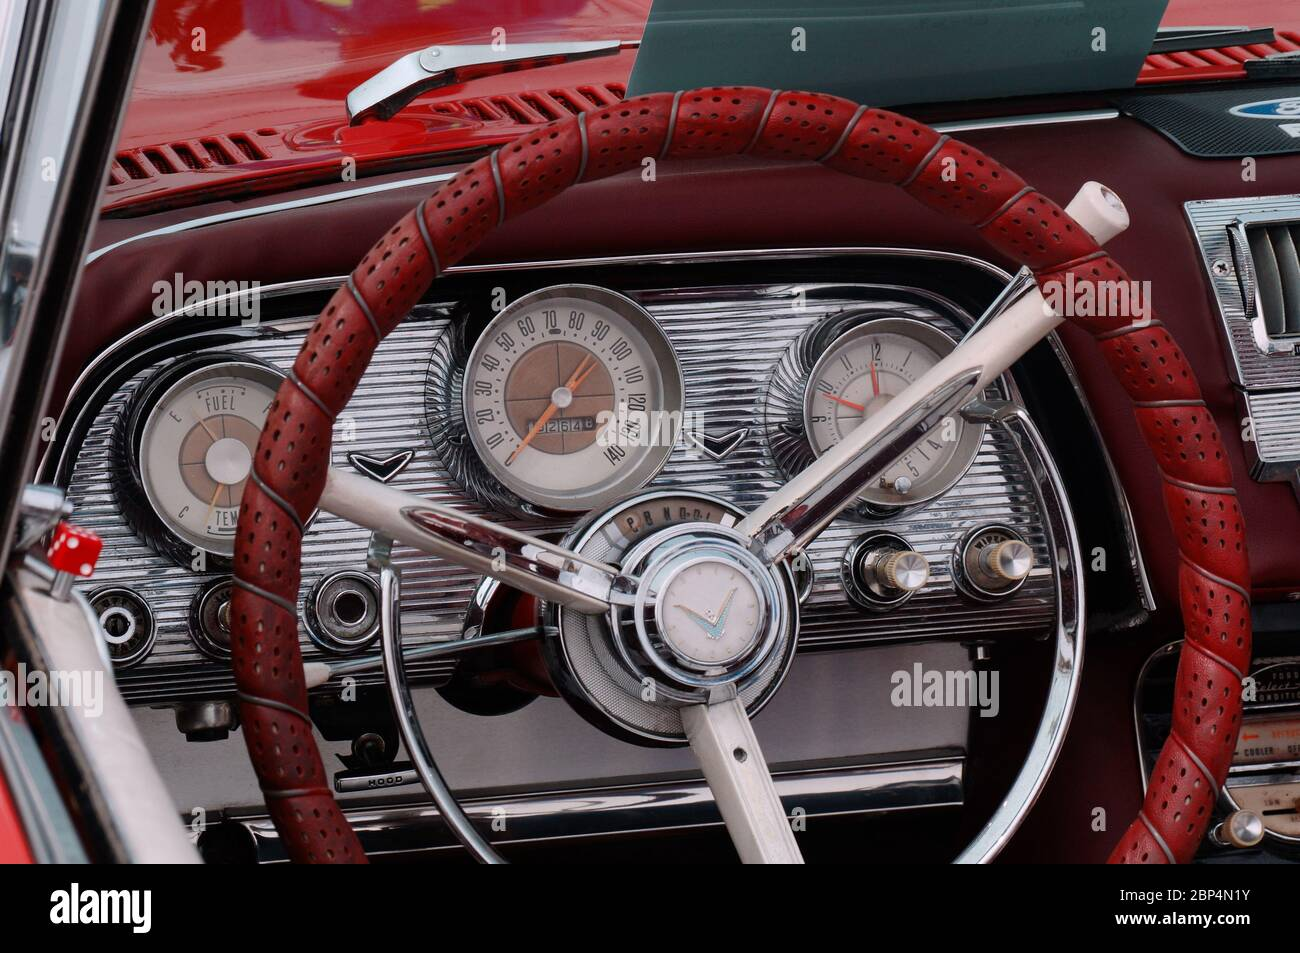 Details about  /1931 1932 1933 auburn 2 speed speedometer control lever re-plated